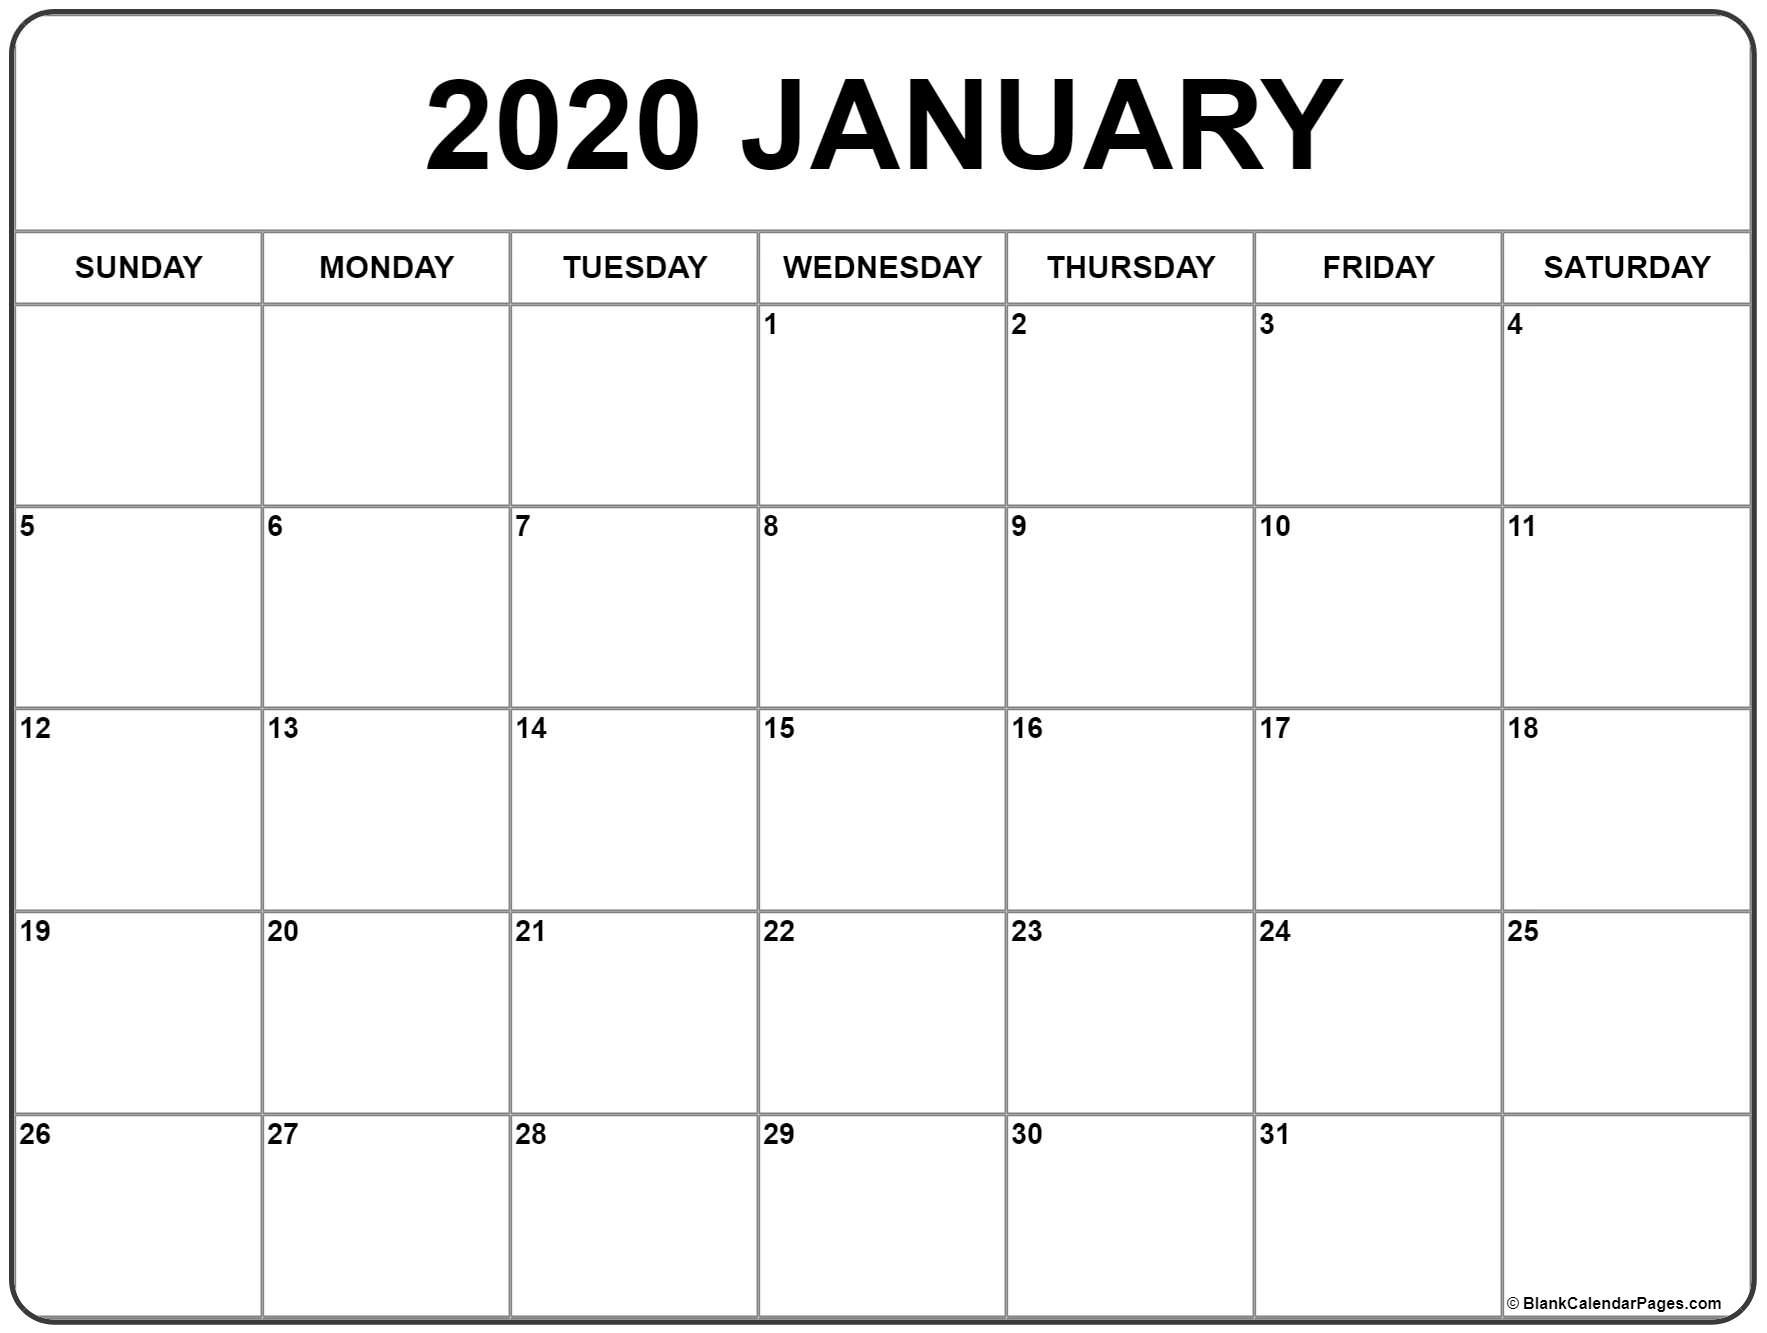 January 2020 Calendar | Free Printable Monthly Calendars in Free Printable Monthly Calendar For Year 2020